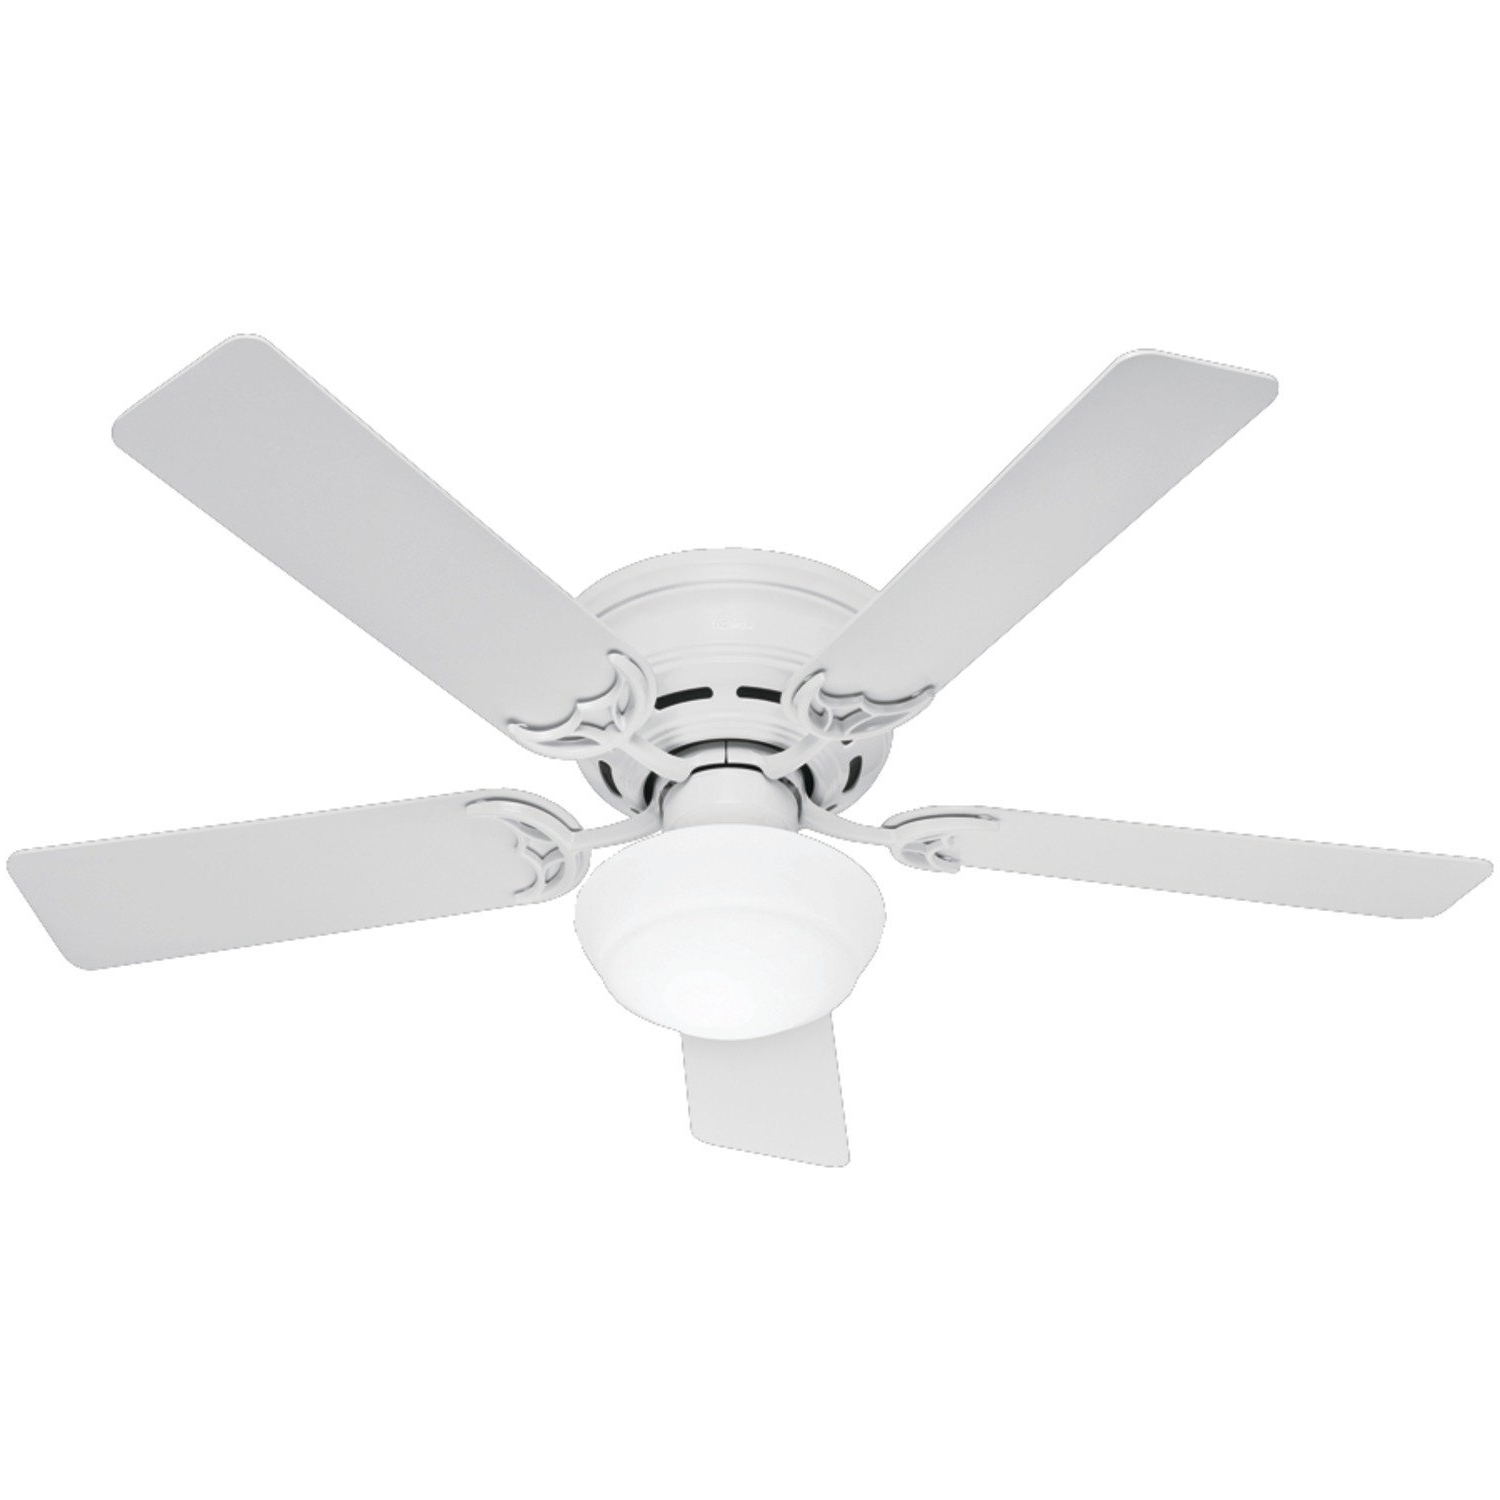 Decor On The Line Regarding Popular Hunter Outdoor Ceiling Fans With White Lights (Gallery 14 of 20)